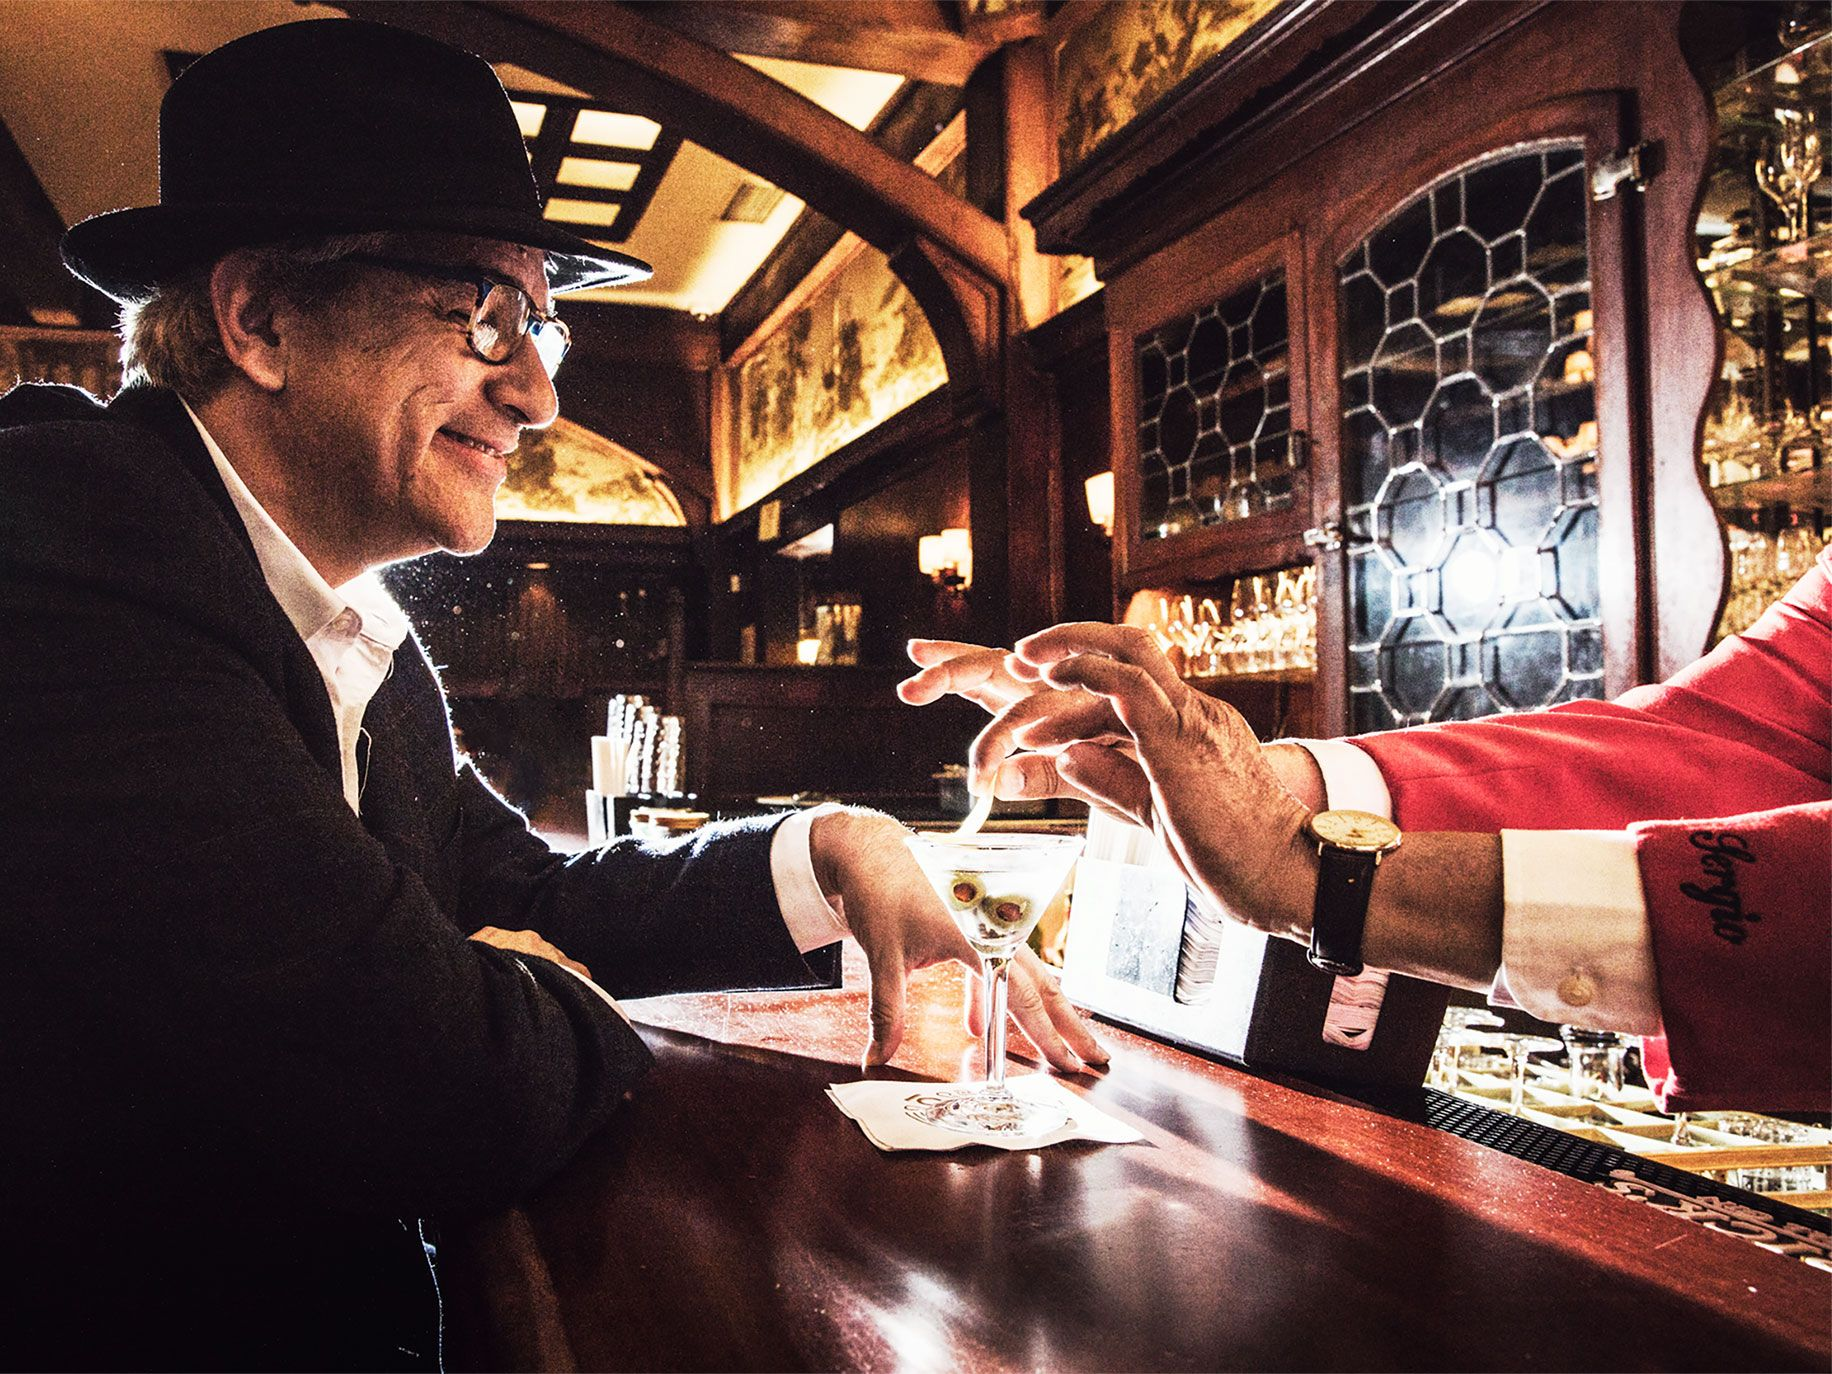 The bar at Musso & Frank Grill is the kind of place where a fast-talking, hardworking gumshoe or Anniversarist might grab a martini and get a hot tip.